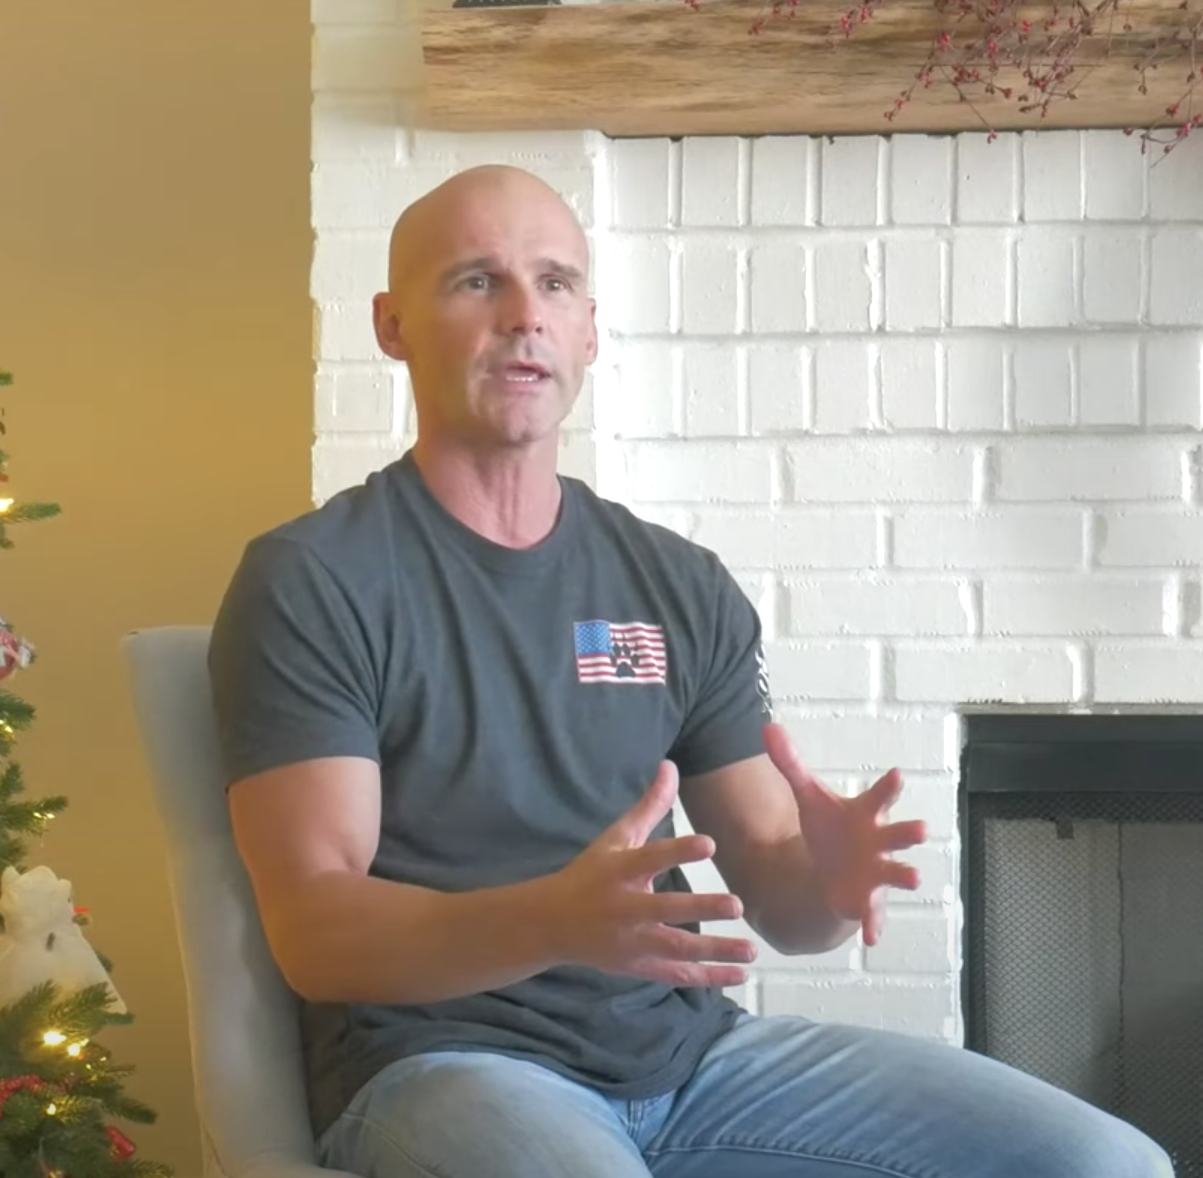 Fireside Chat 8: Protein for Longevity/Anti-aging